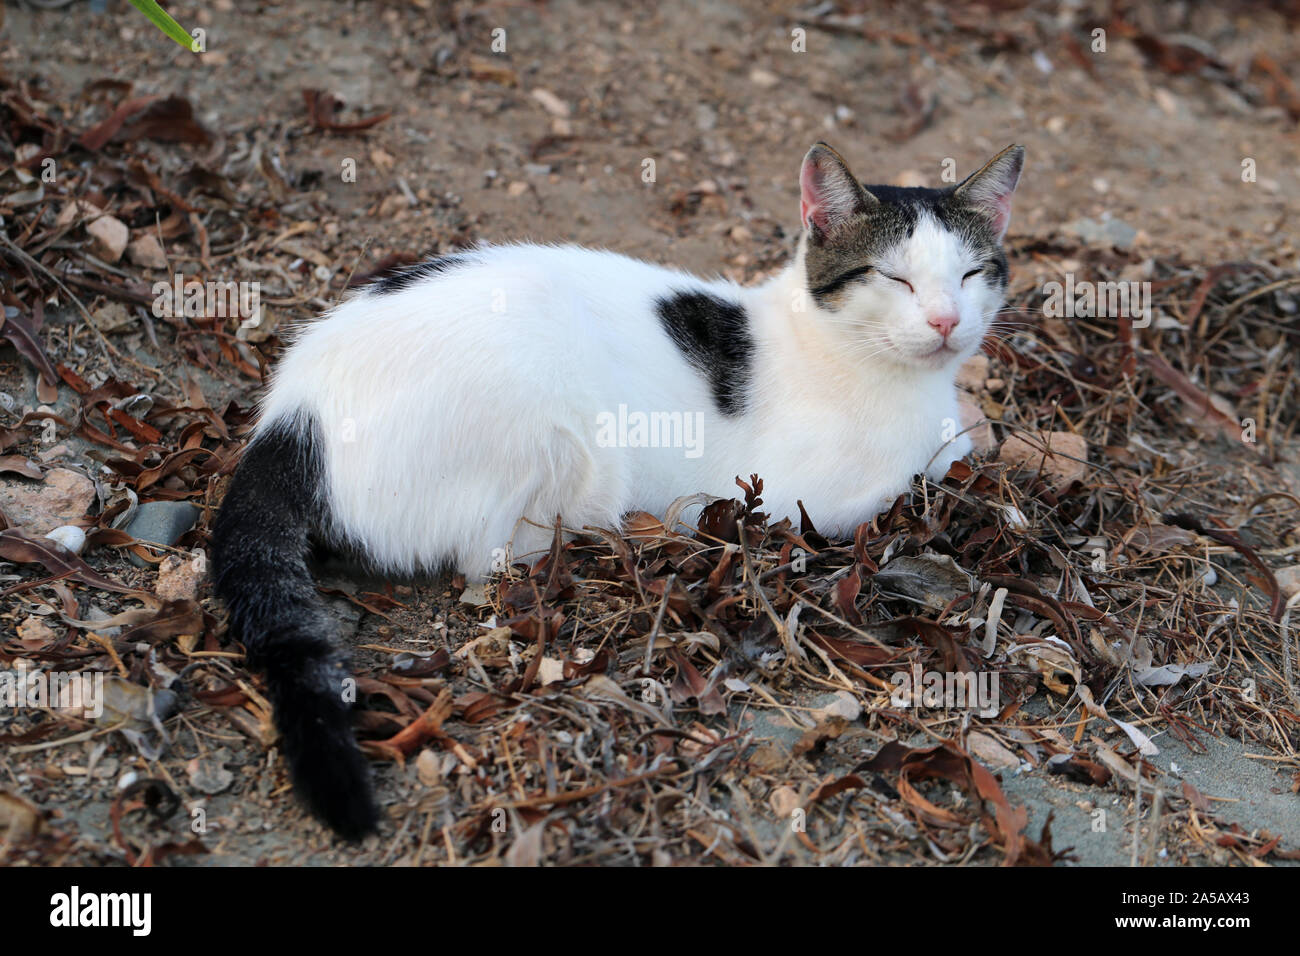 Wild Adult Cat Living In Cyprus Cute Soft And Furry White And Black Cat This Cat Is Laying On The Ground Looking Tired Sand And Dead Leaves Around Stock Photo Alamy